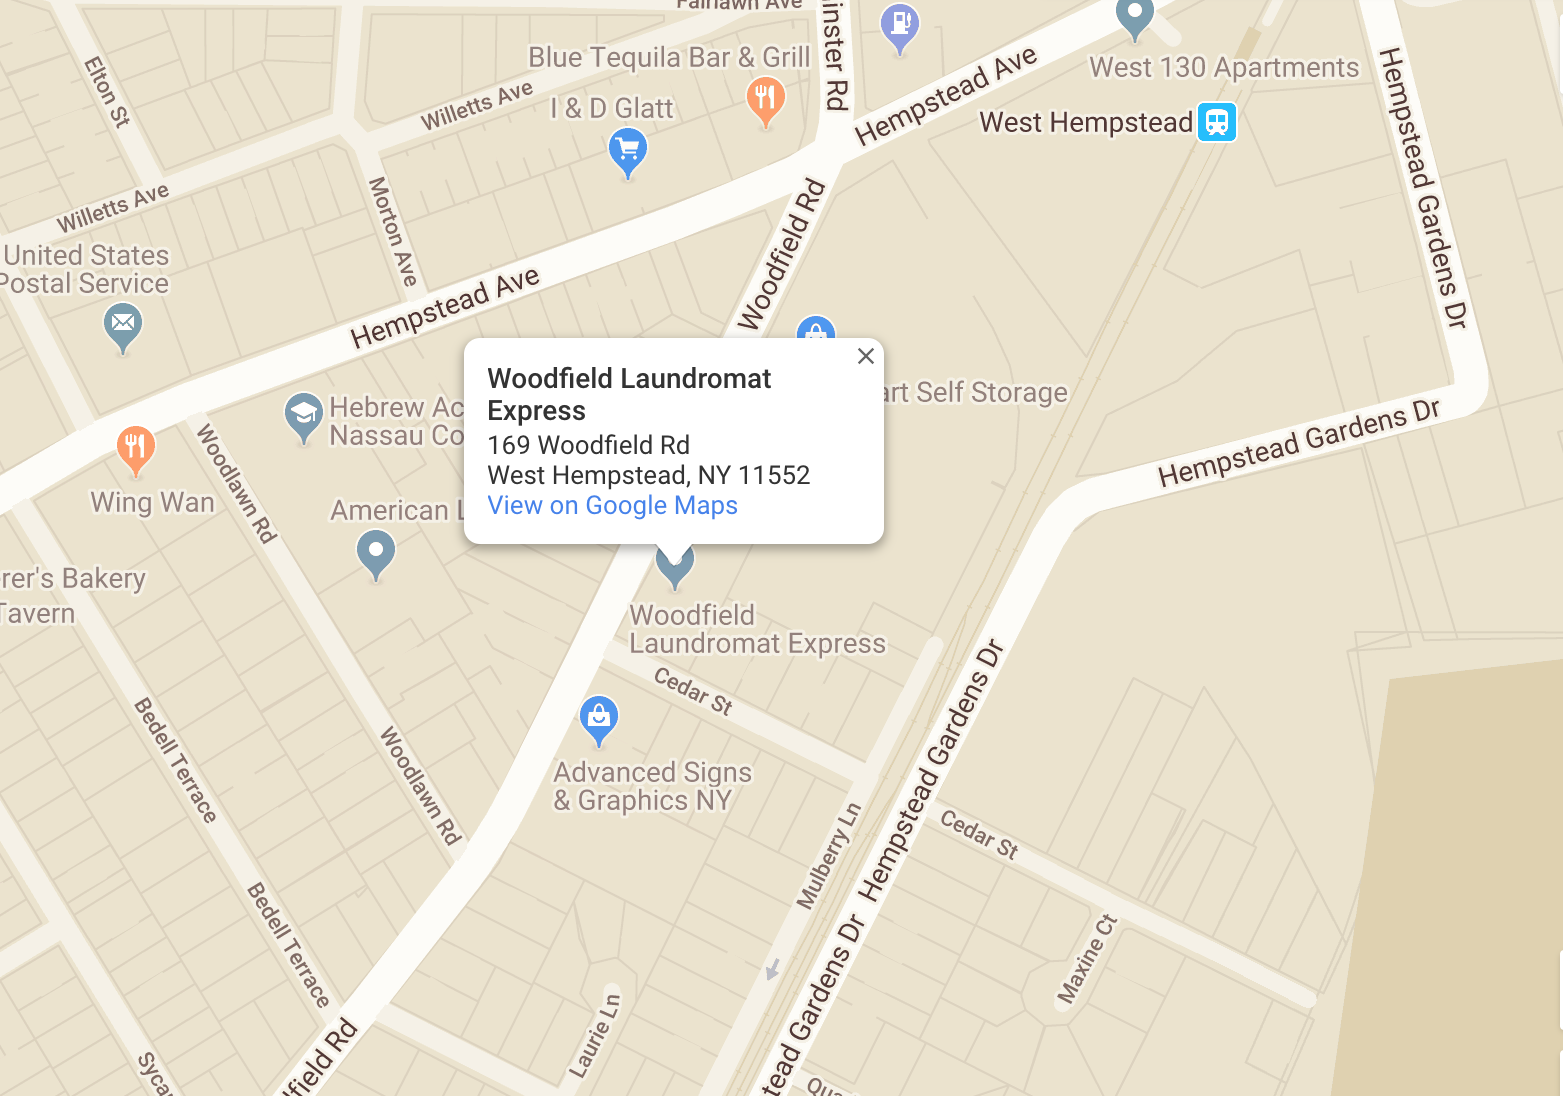 Woodfield Laundromat Express Location